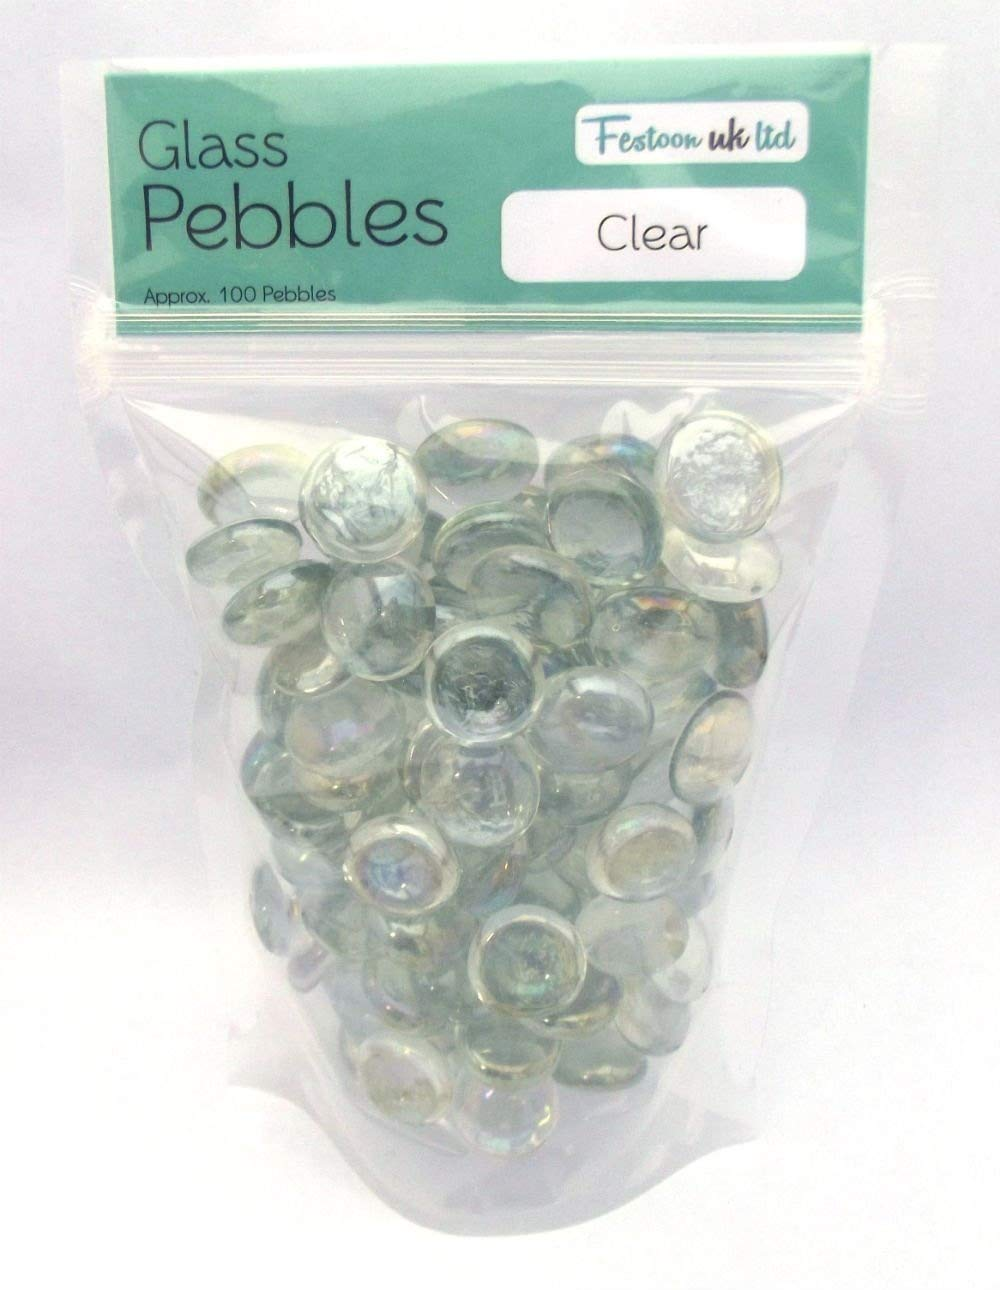 100 Approx. Clear Round Decorative Glass Pebbles / Stones / Beads / Nuggets by The Glass Pebble Shop